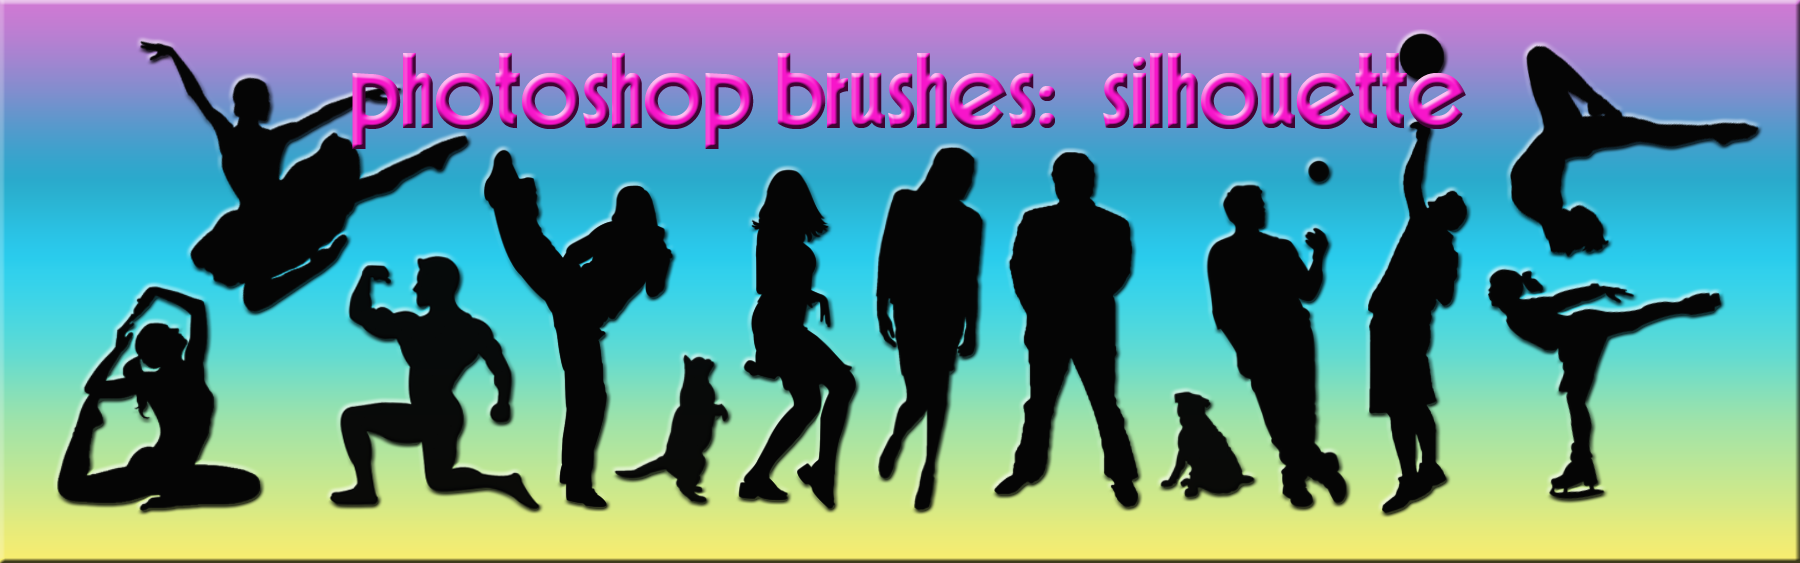 photoshop brushes: silhouette